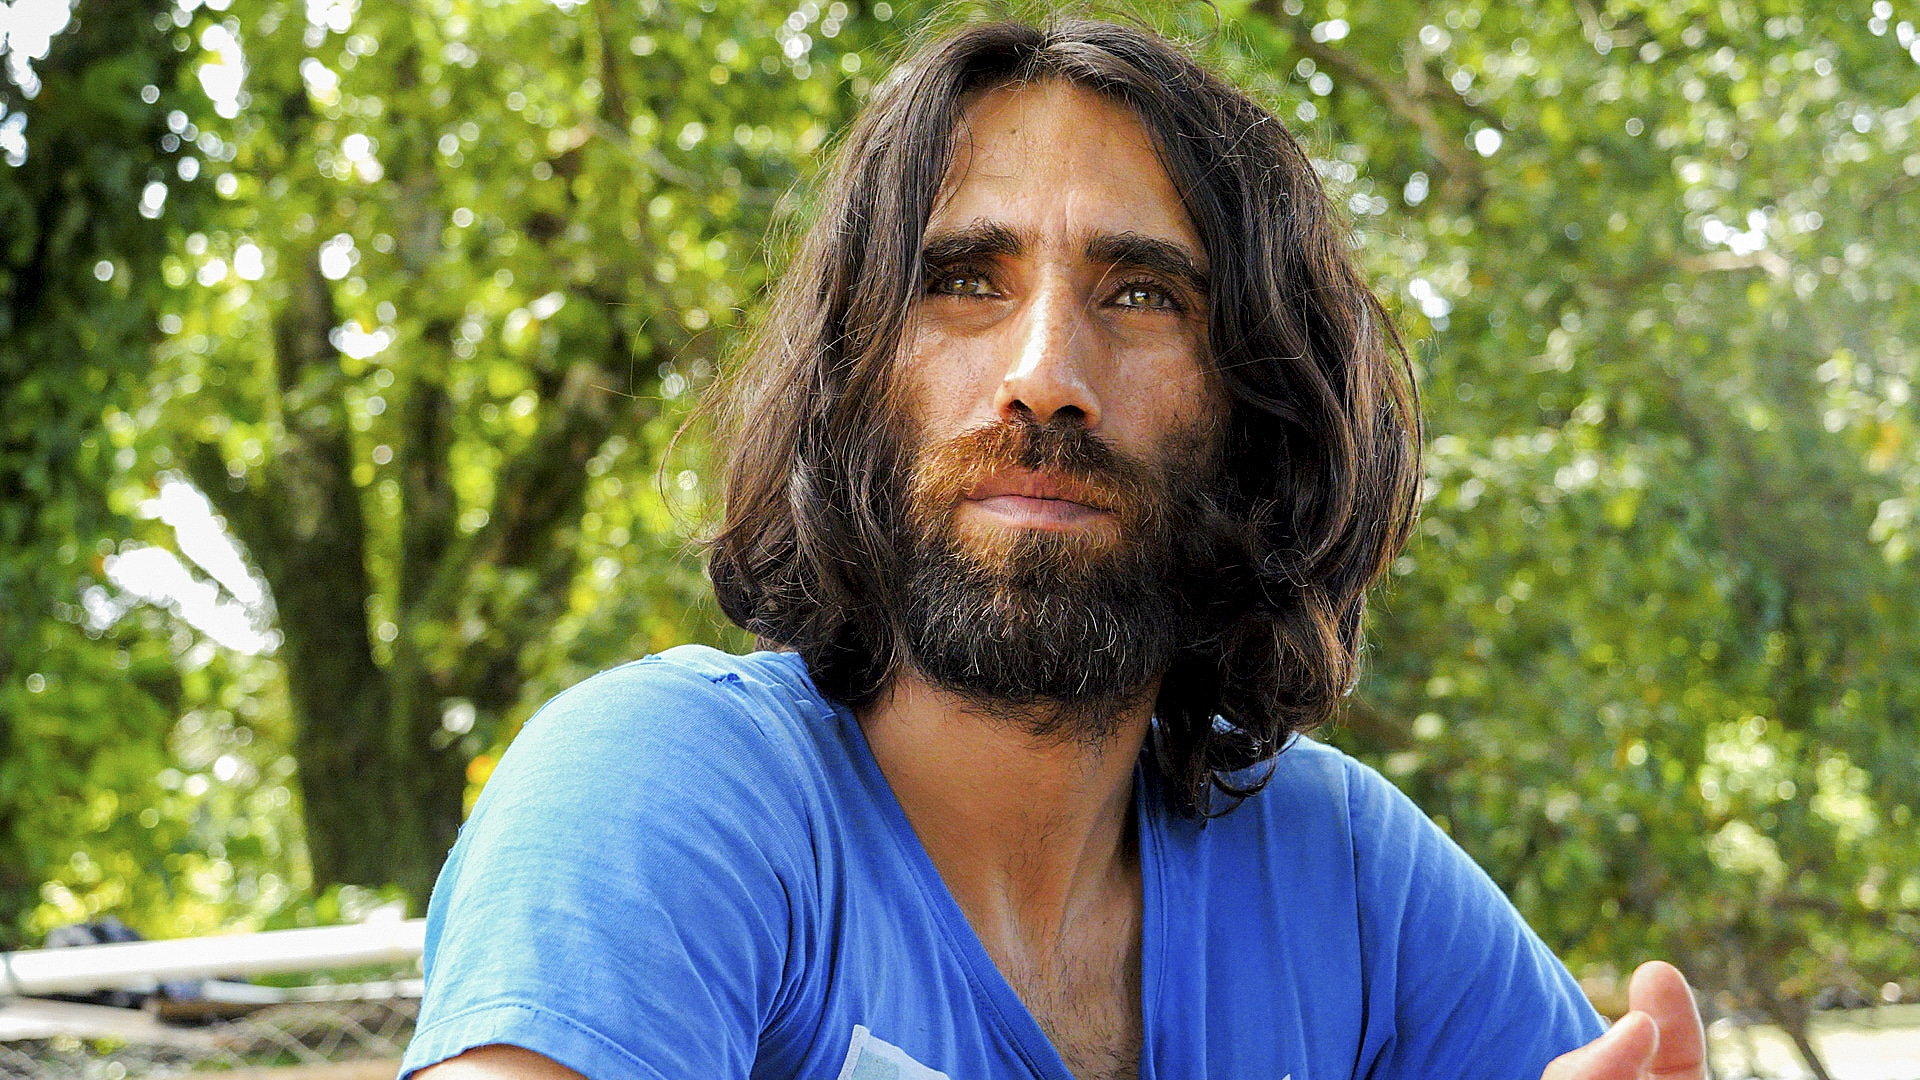 Kurdish-Iranian writer and asylum seeker Behrouz Boochani awarded Victorian Prize for Literature